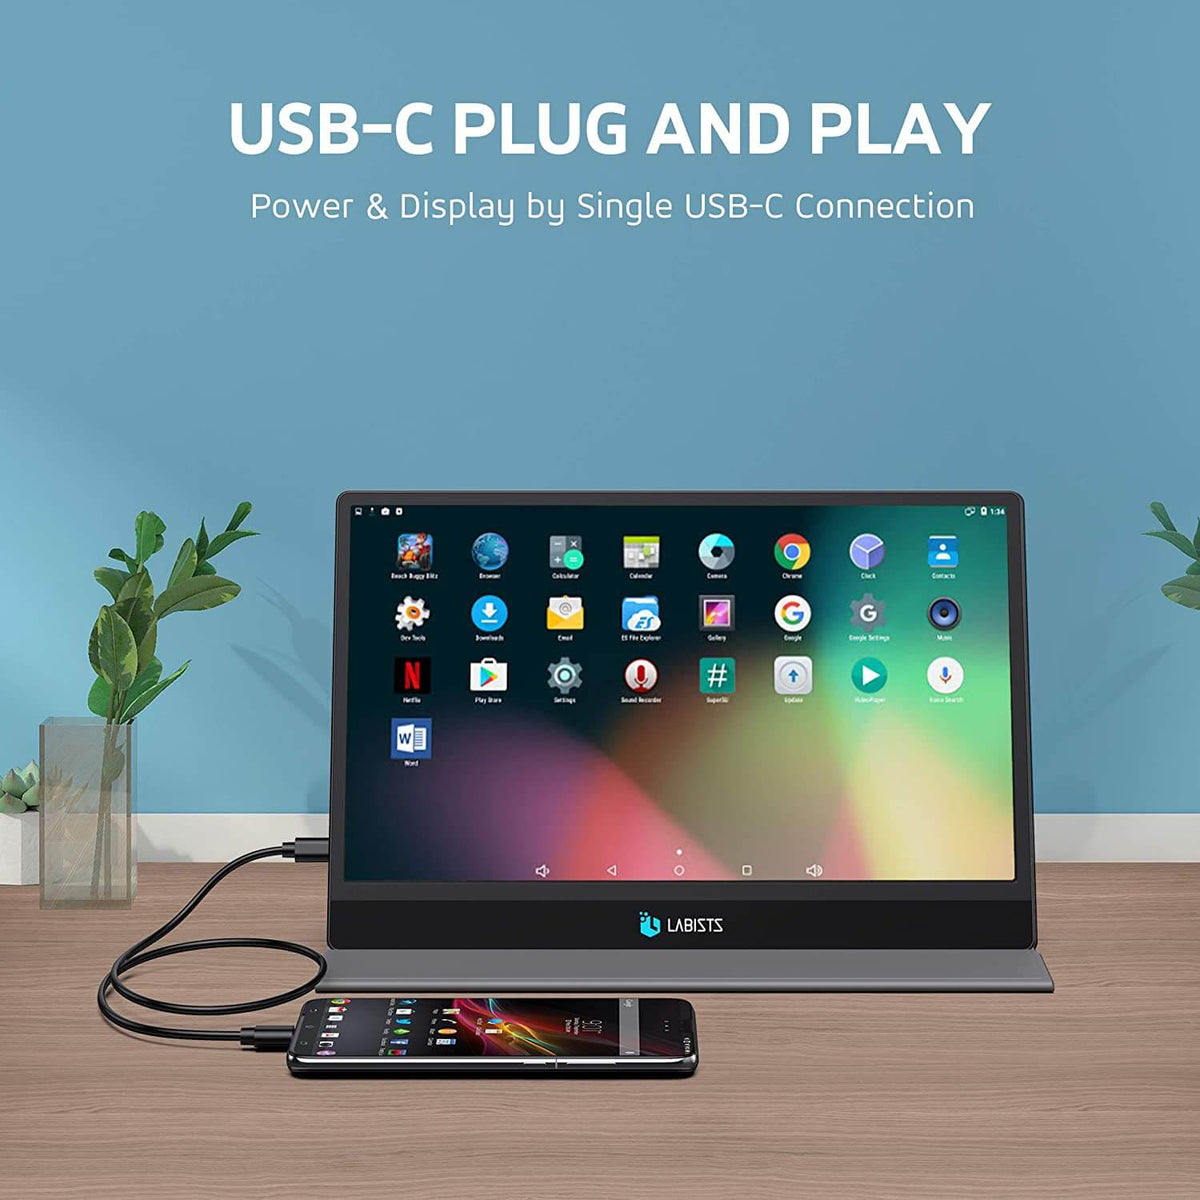 USE-C plug and play